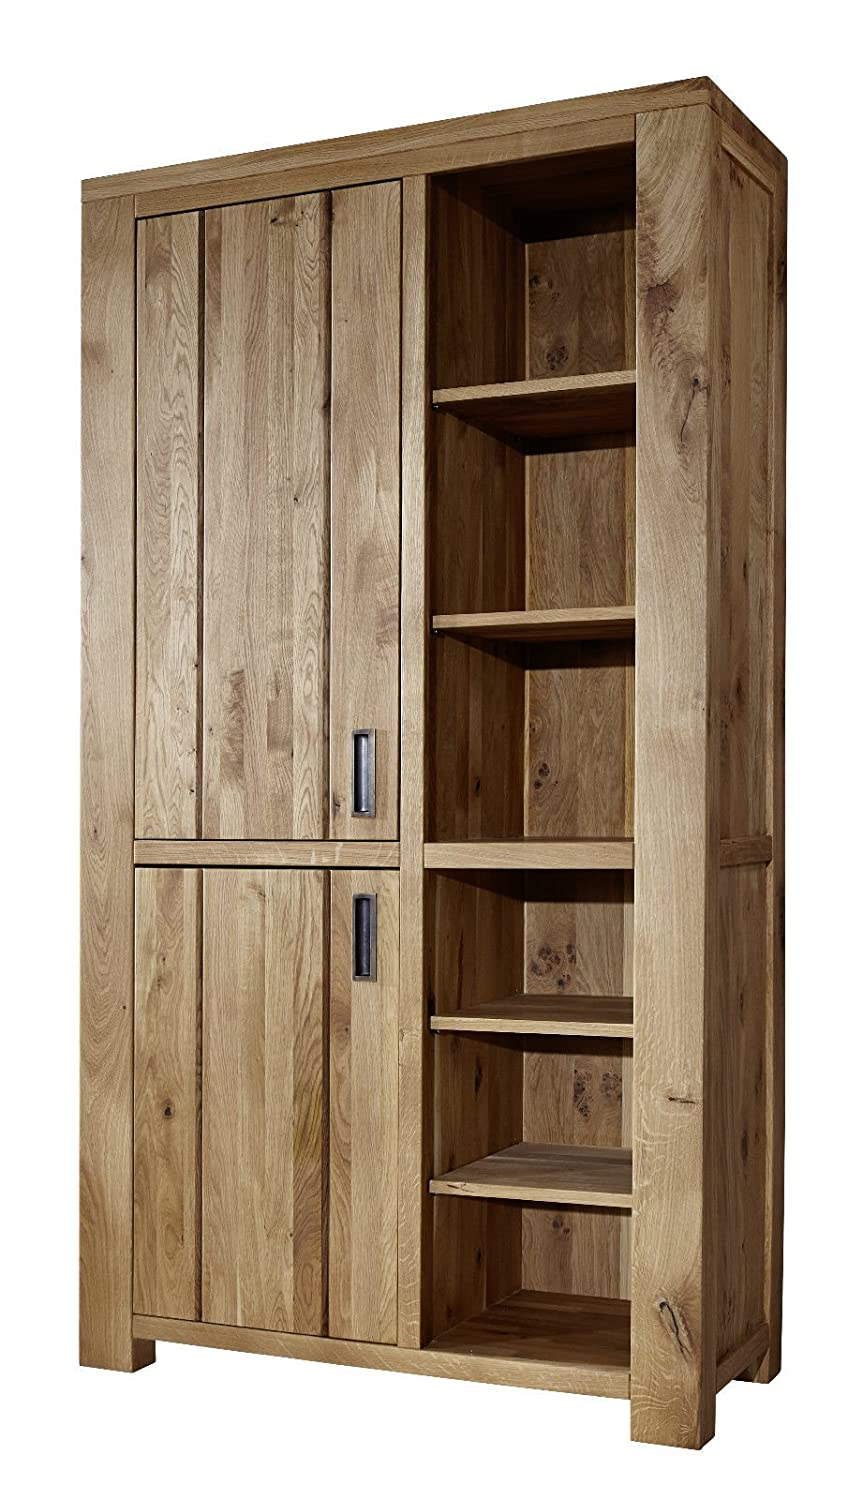 regal schrank b cherregal wildeiche massiv eiche holz ge lt 39 moderna 39 g nstig kaufen. Black Bedroom Furniture Sets. Home Design Ideas